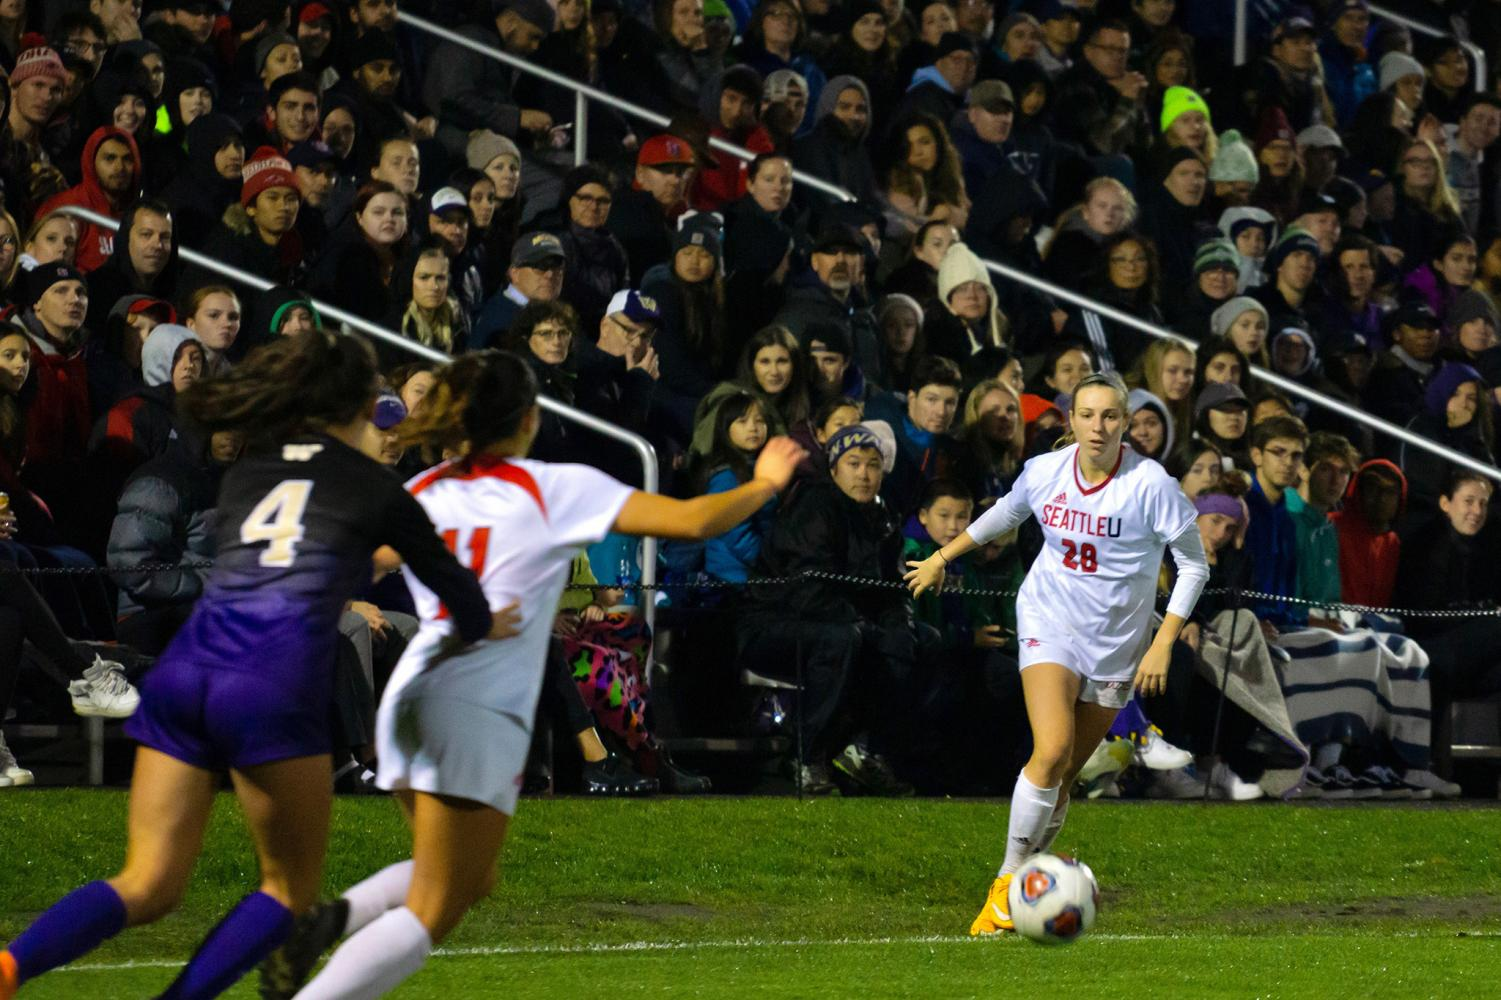 UNCP soccer makes NCAA tourney field